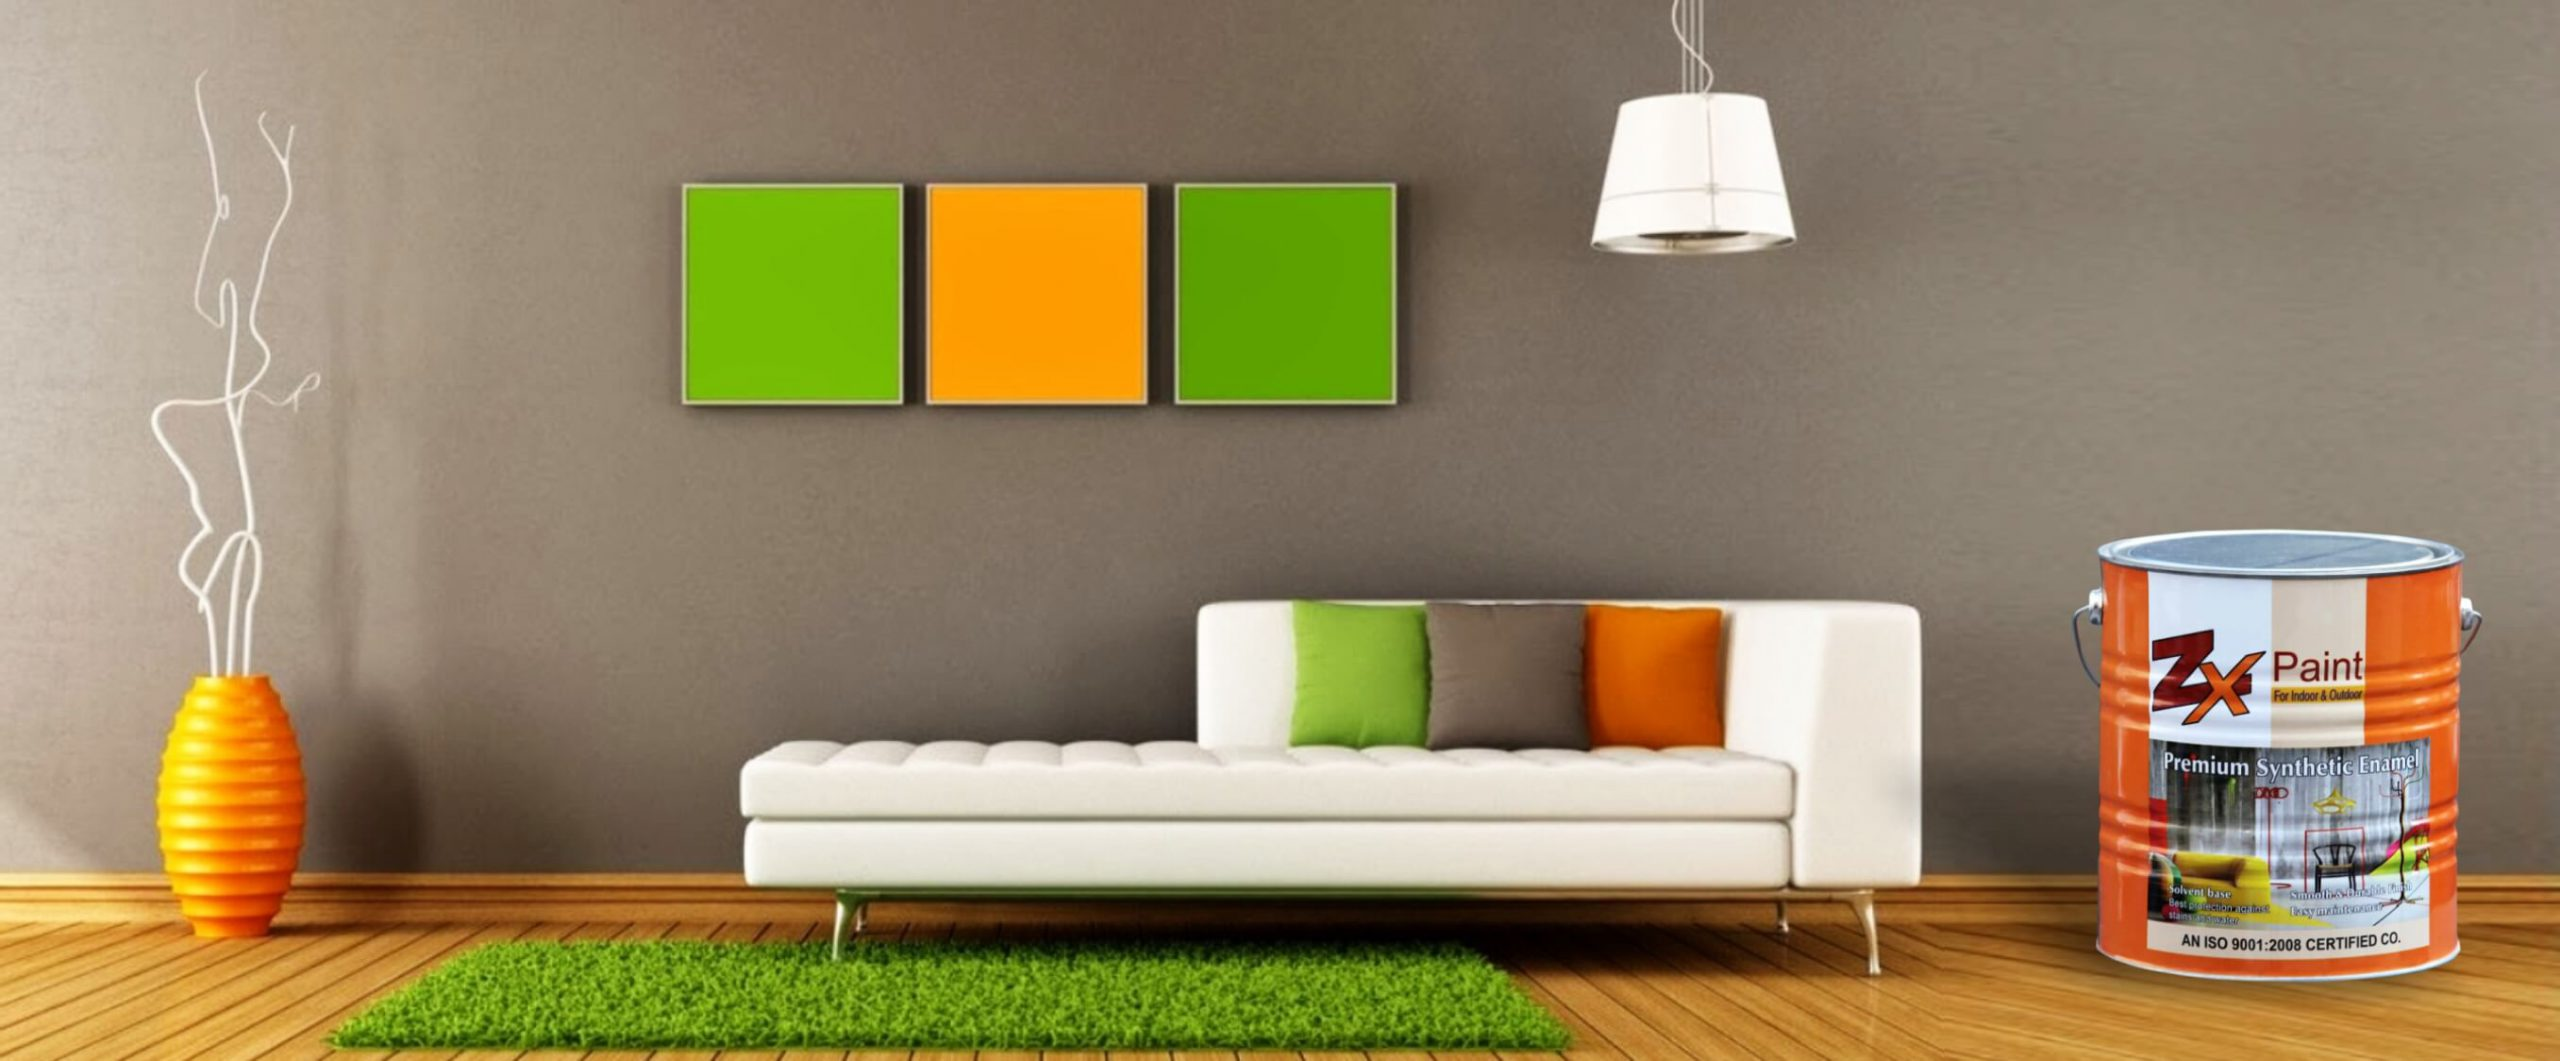 Guest room | Painting services